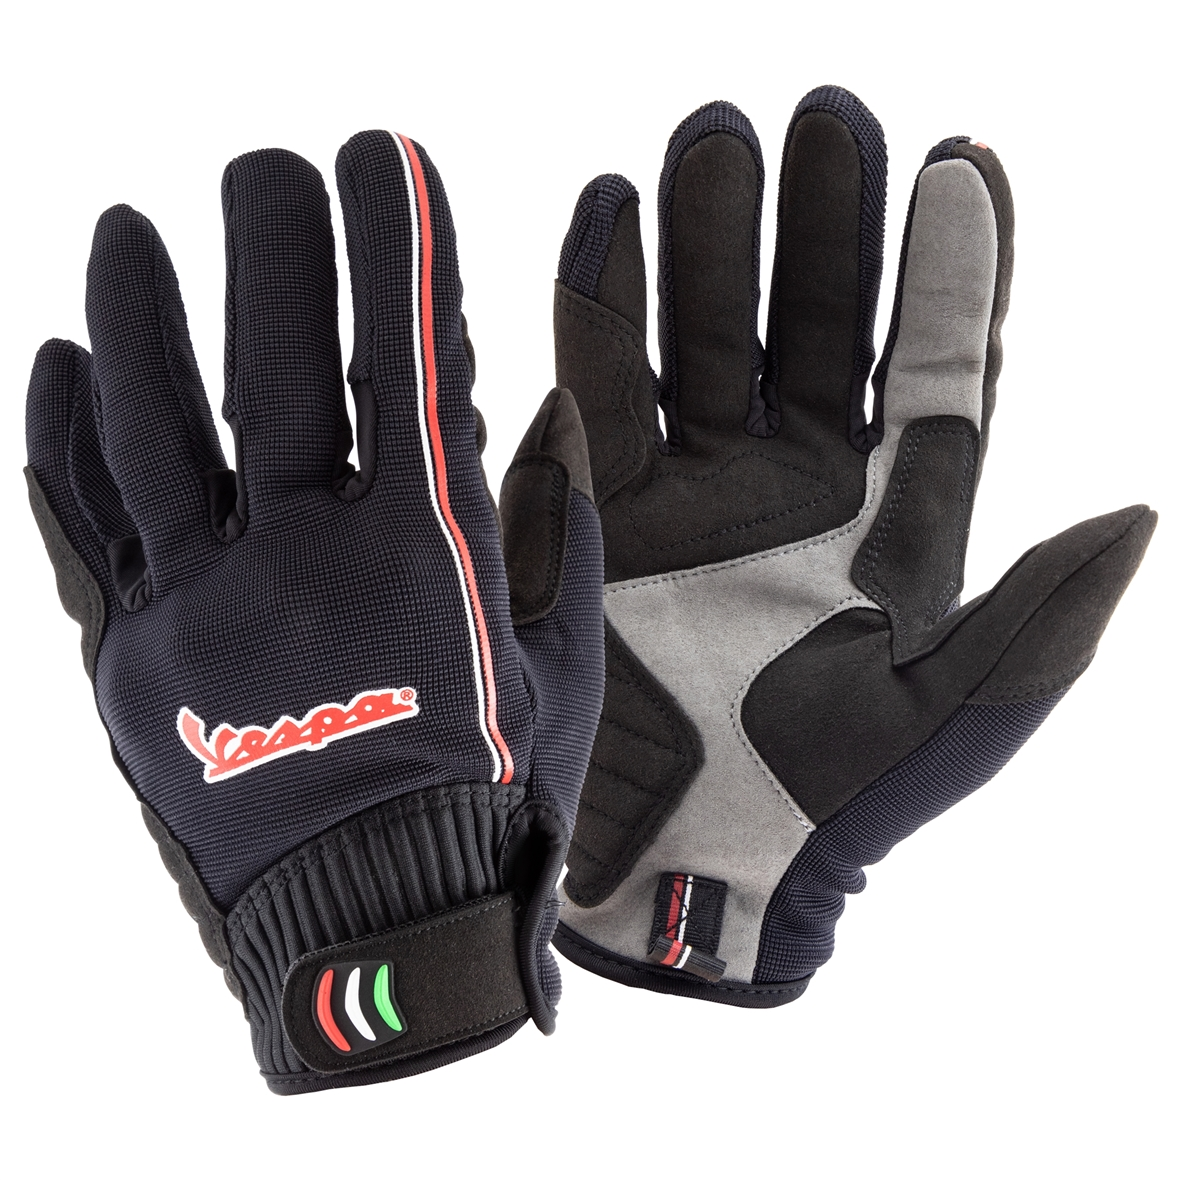 Product Image for 'Gloves PIAGGIO Vespa Modernist size 3XLTitle'